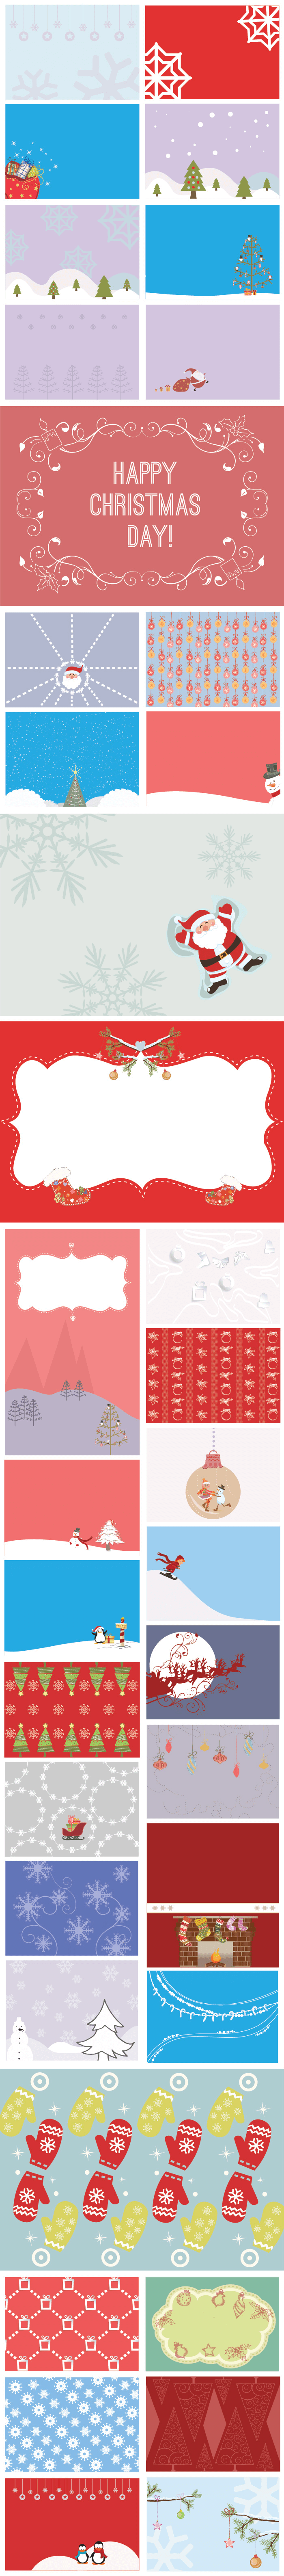 700px_winter-illustrations-set-2